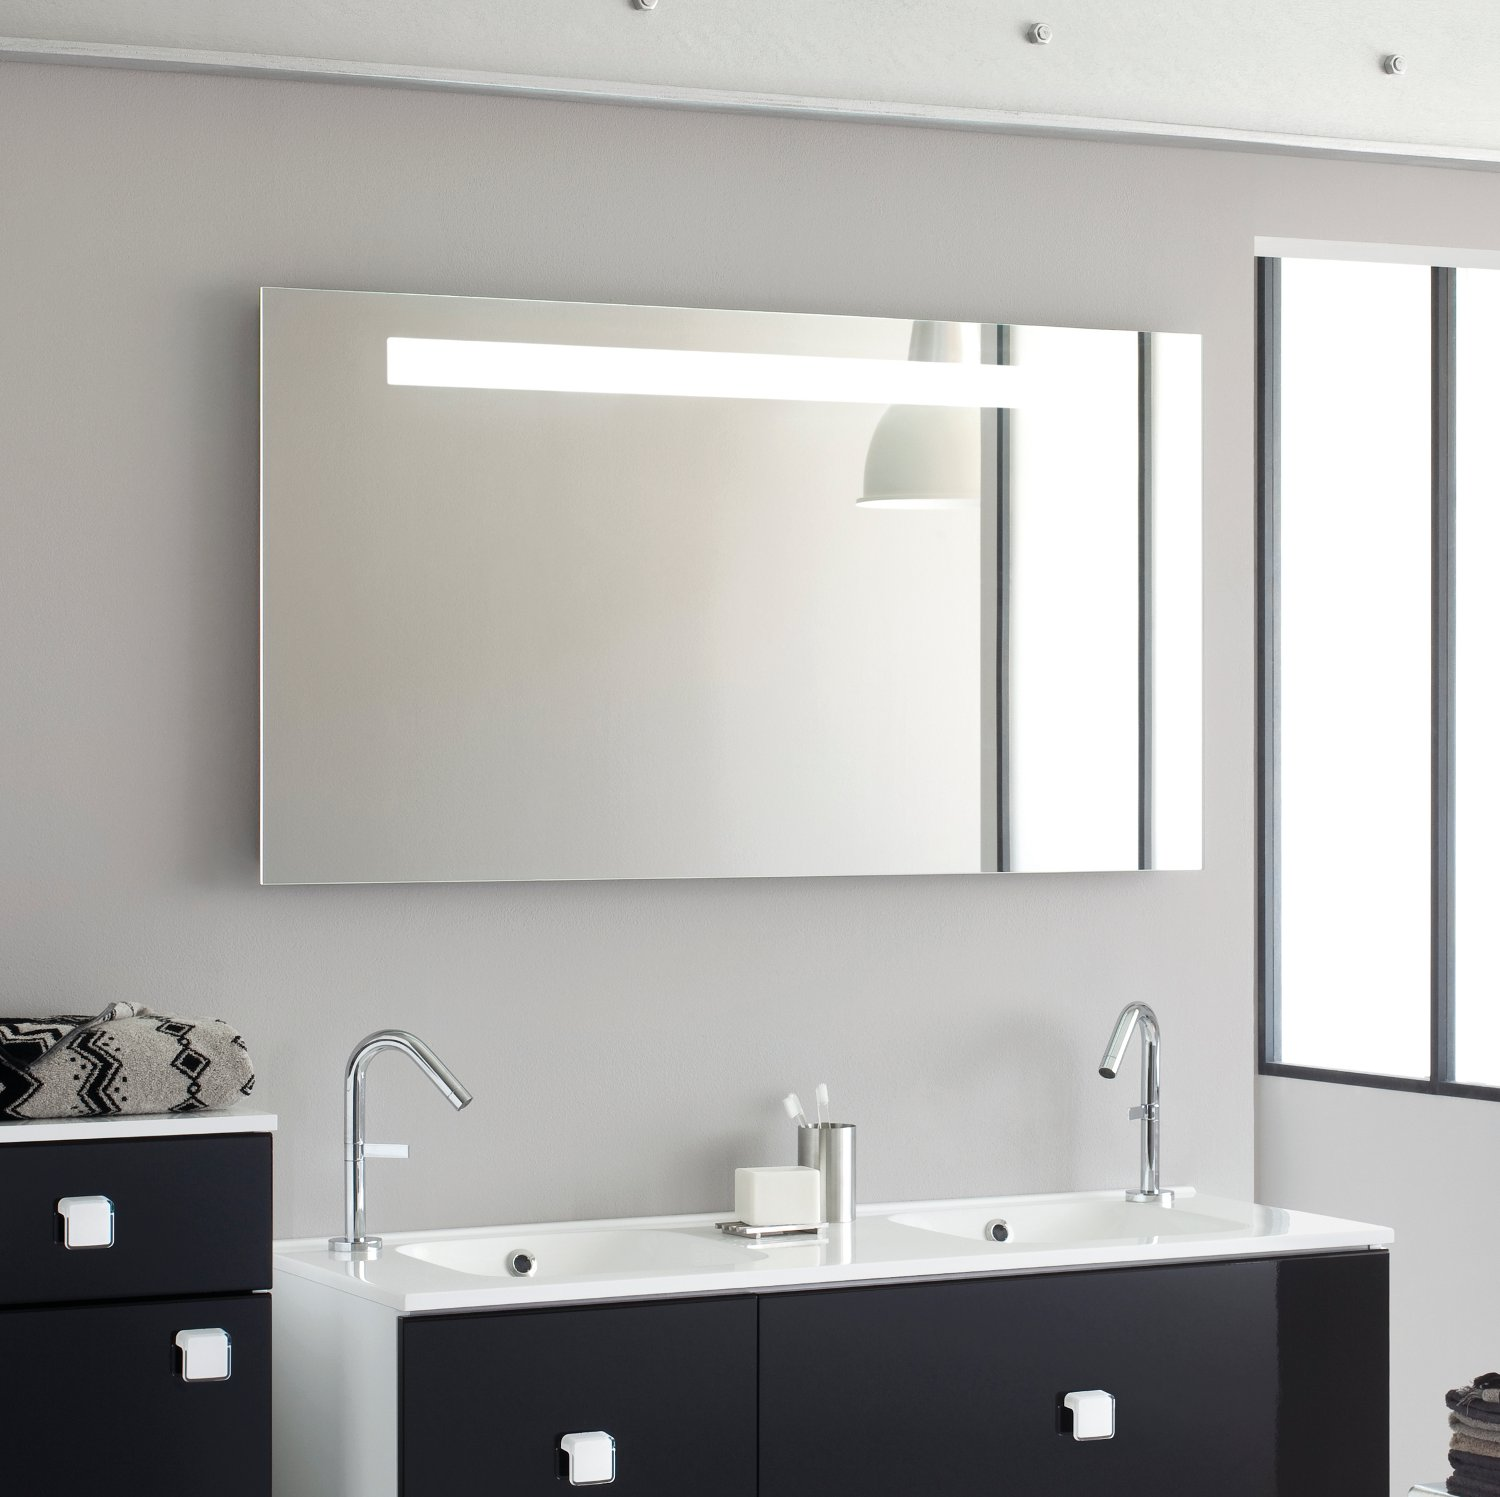 miroir salle de bain le blog de d co et saveurs. Black Bedroom Furniture Sets. Home Design Ideas